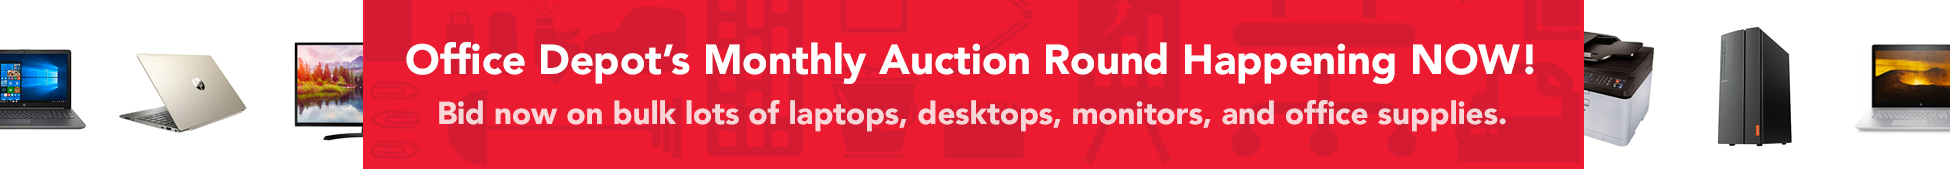 Office Depot Liquidation Auctions Monthly Event